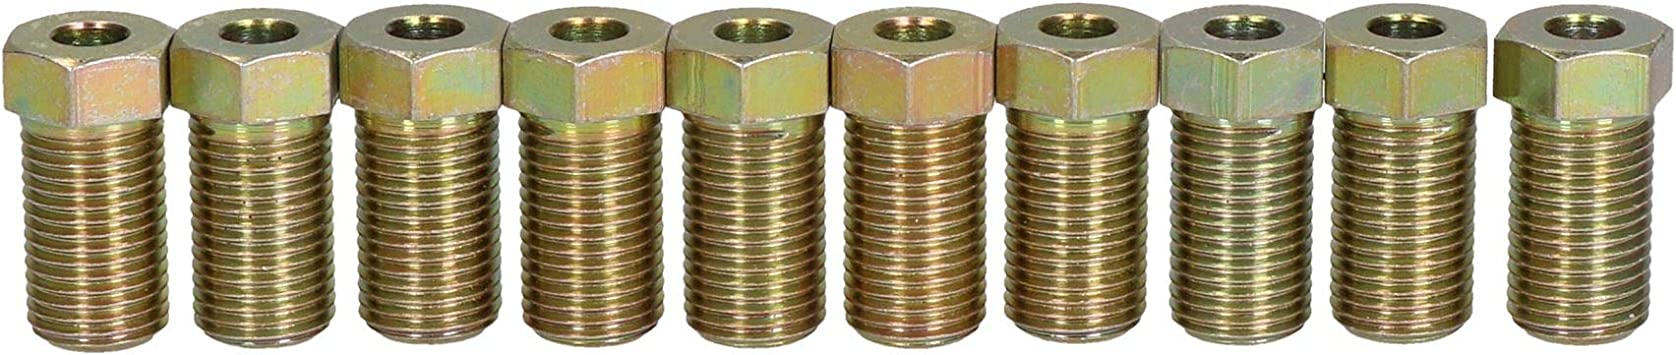 """AB Tools-Bond Steel Male Brake Pipe Union Fittings 3//8 x 24 UNF for 3//16/"""" Brake Pipe 10pc"""